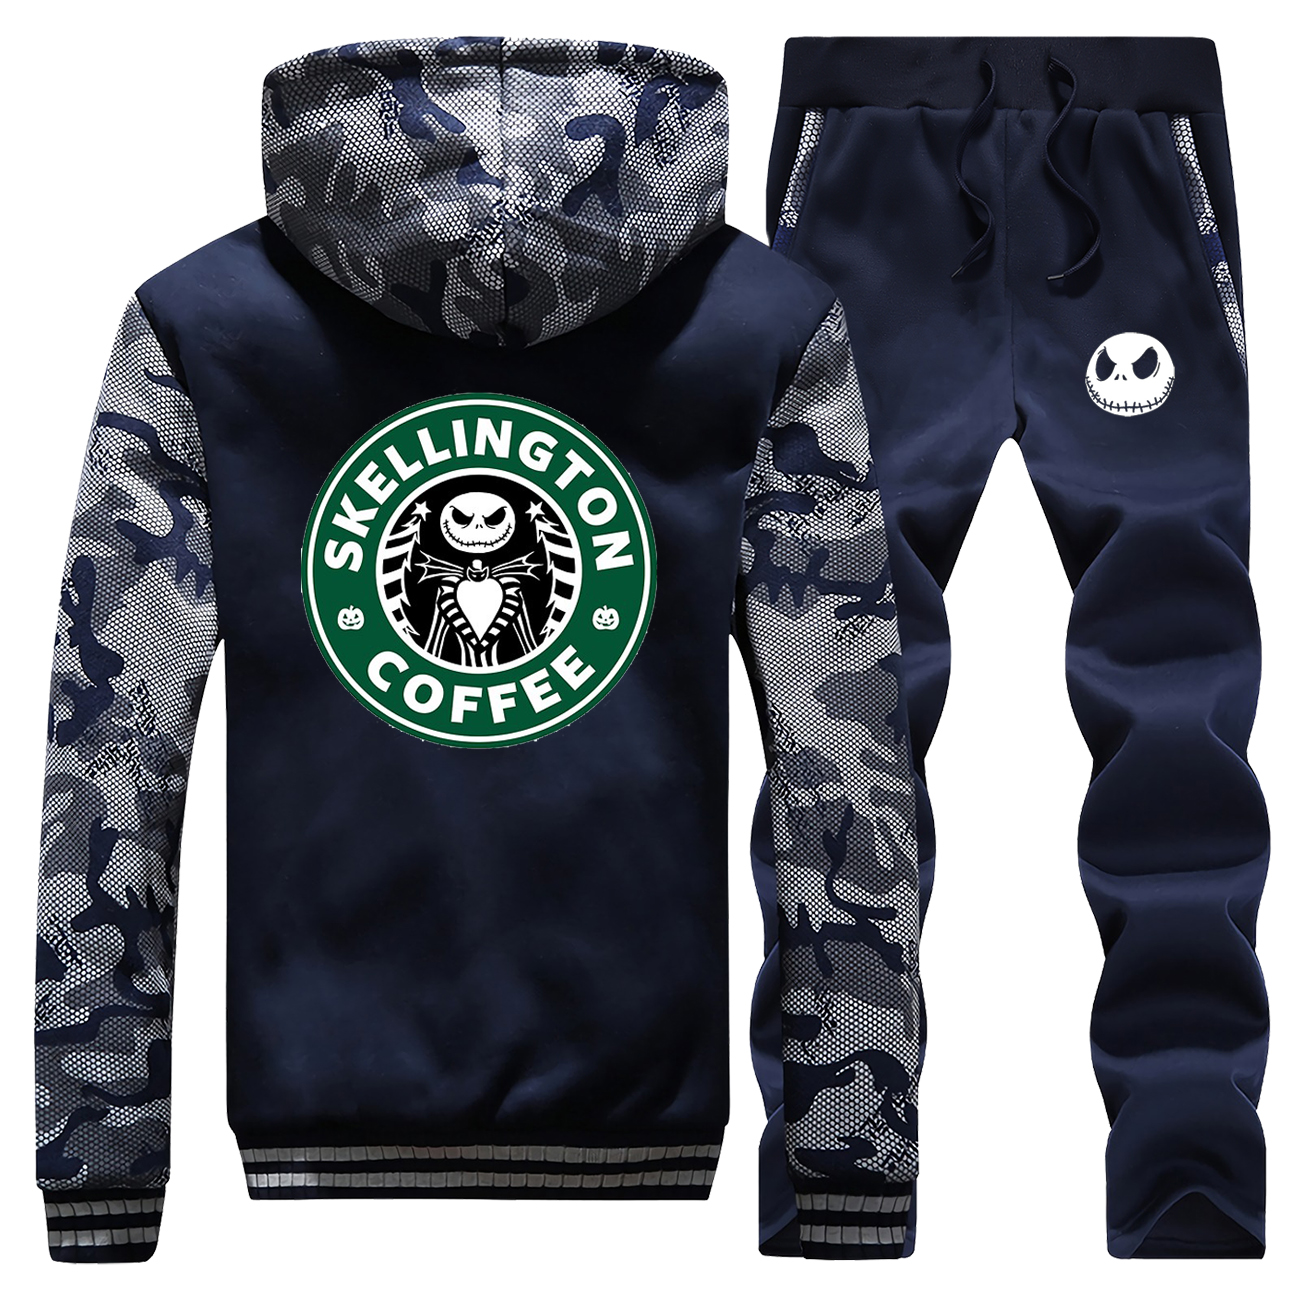 Jack Coffee Hoodies Pants Set MenThe Night Mare Skull Tracksuit Coat Track Suit Winter Thick Sportswear Jacket Camo 2 Piece Sets